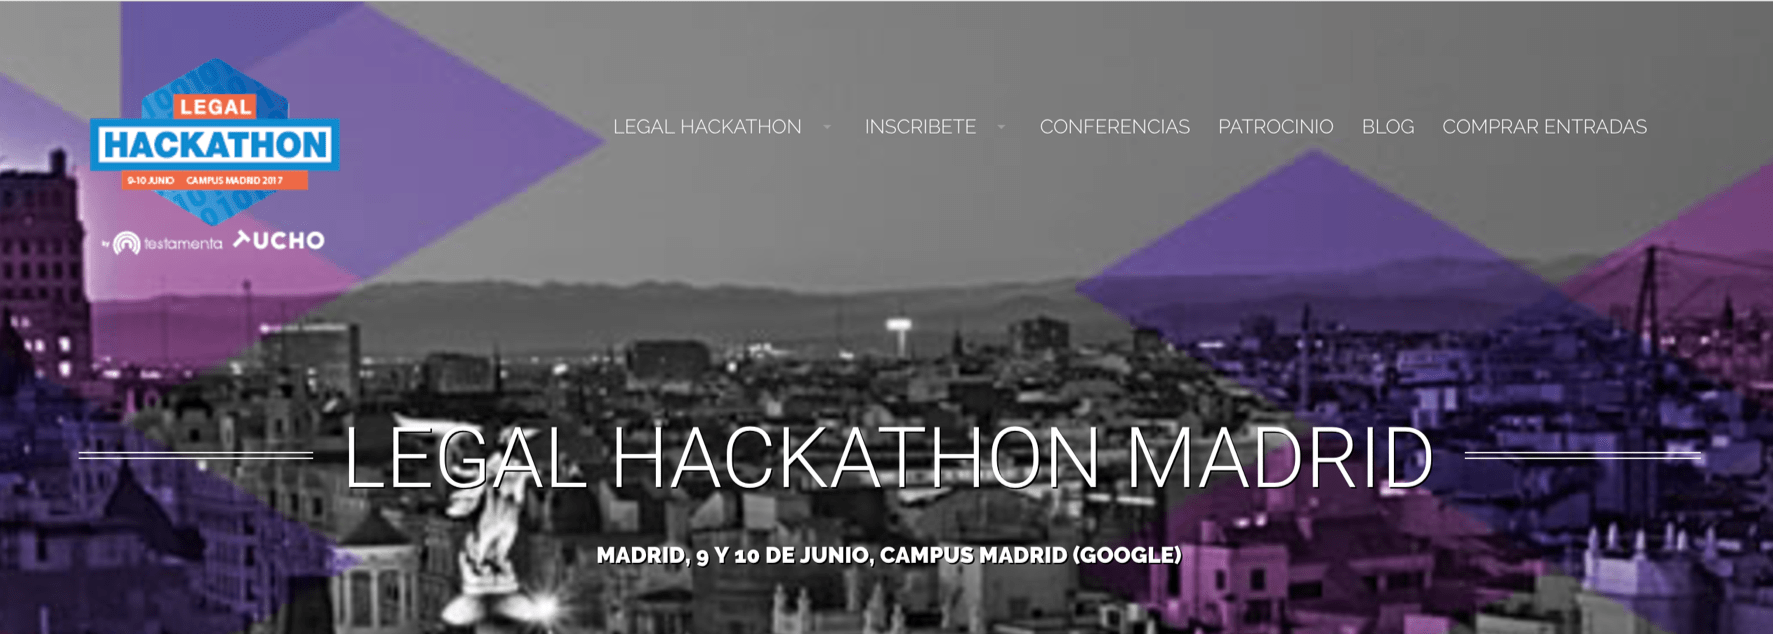 Legal Hackathon 2017 - Google Campus Madrid by Tucho en colaboración con Testamenta